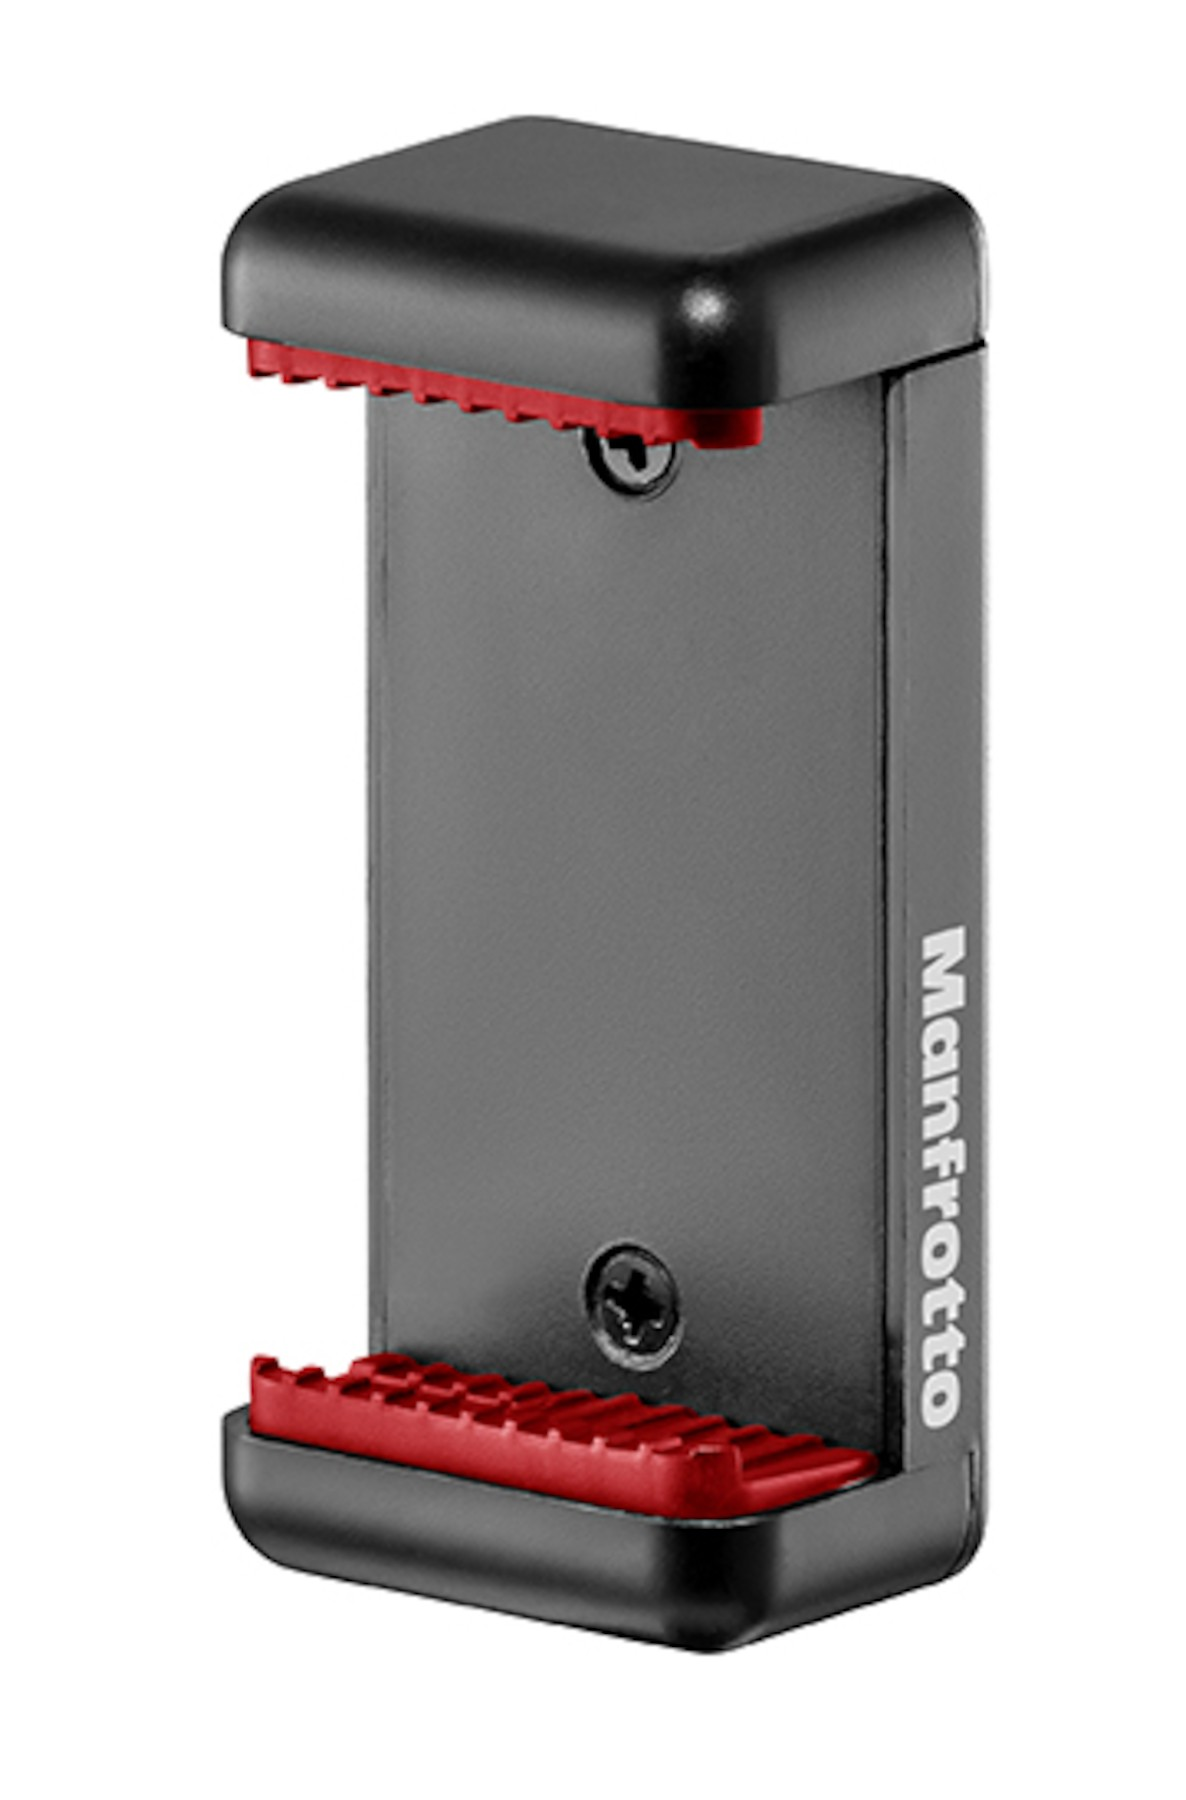 MANFROTTO MINI TRIPOD BLACK WITH PHONE CLAMP MKPIXICLAMP-BK